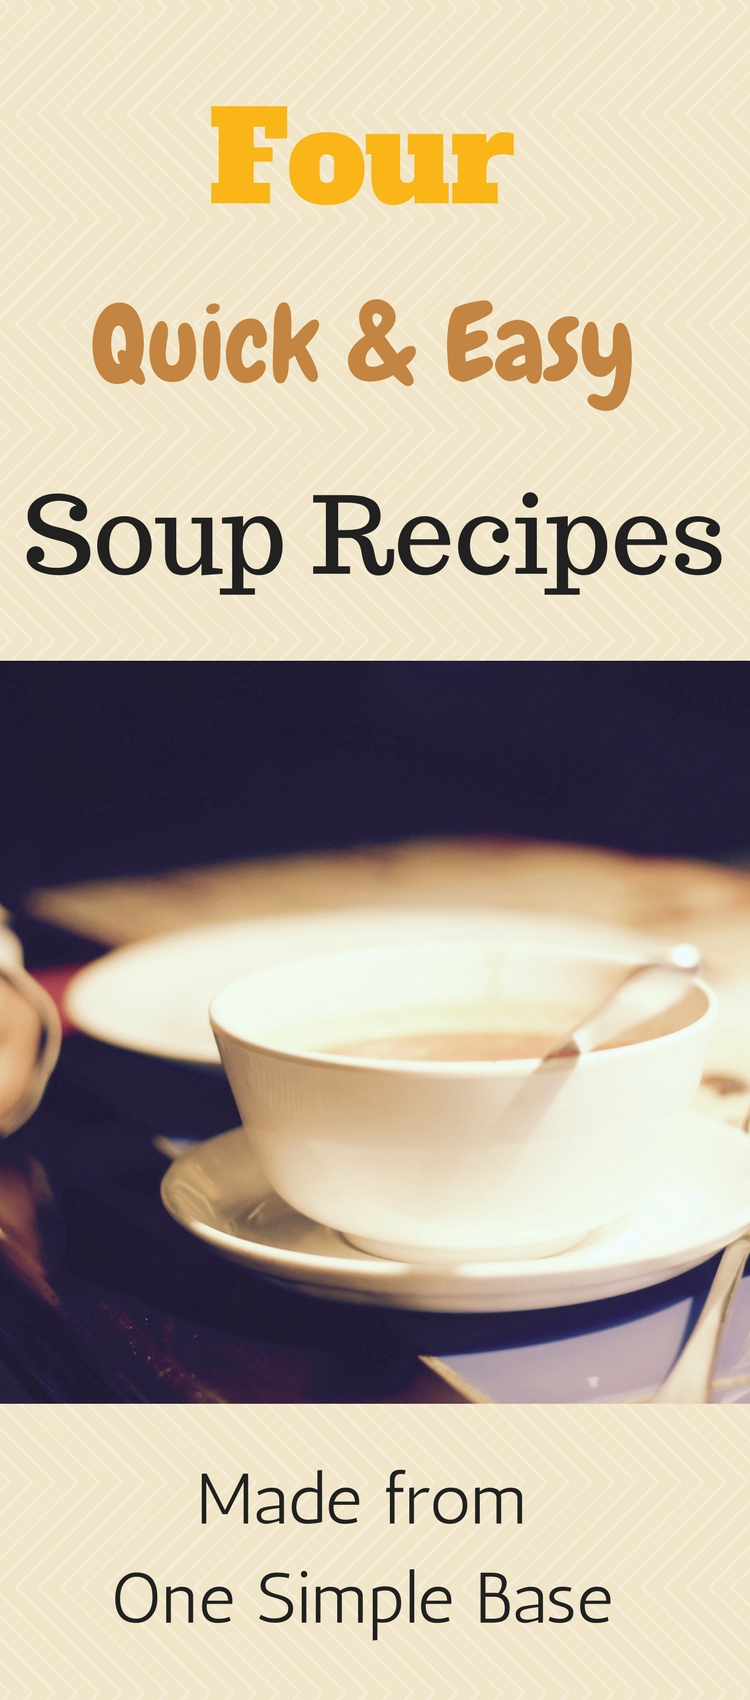 Four Quick and Easy Soup Recipes made from One Simple Base including Time Saving Tips for Busy Moms and Dads!